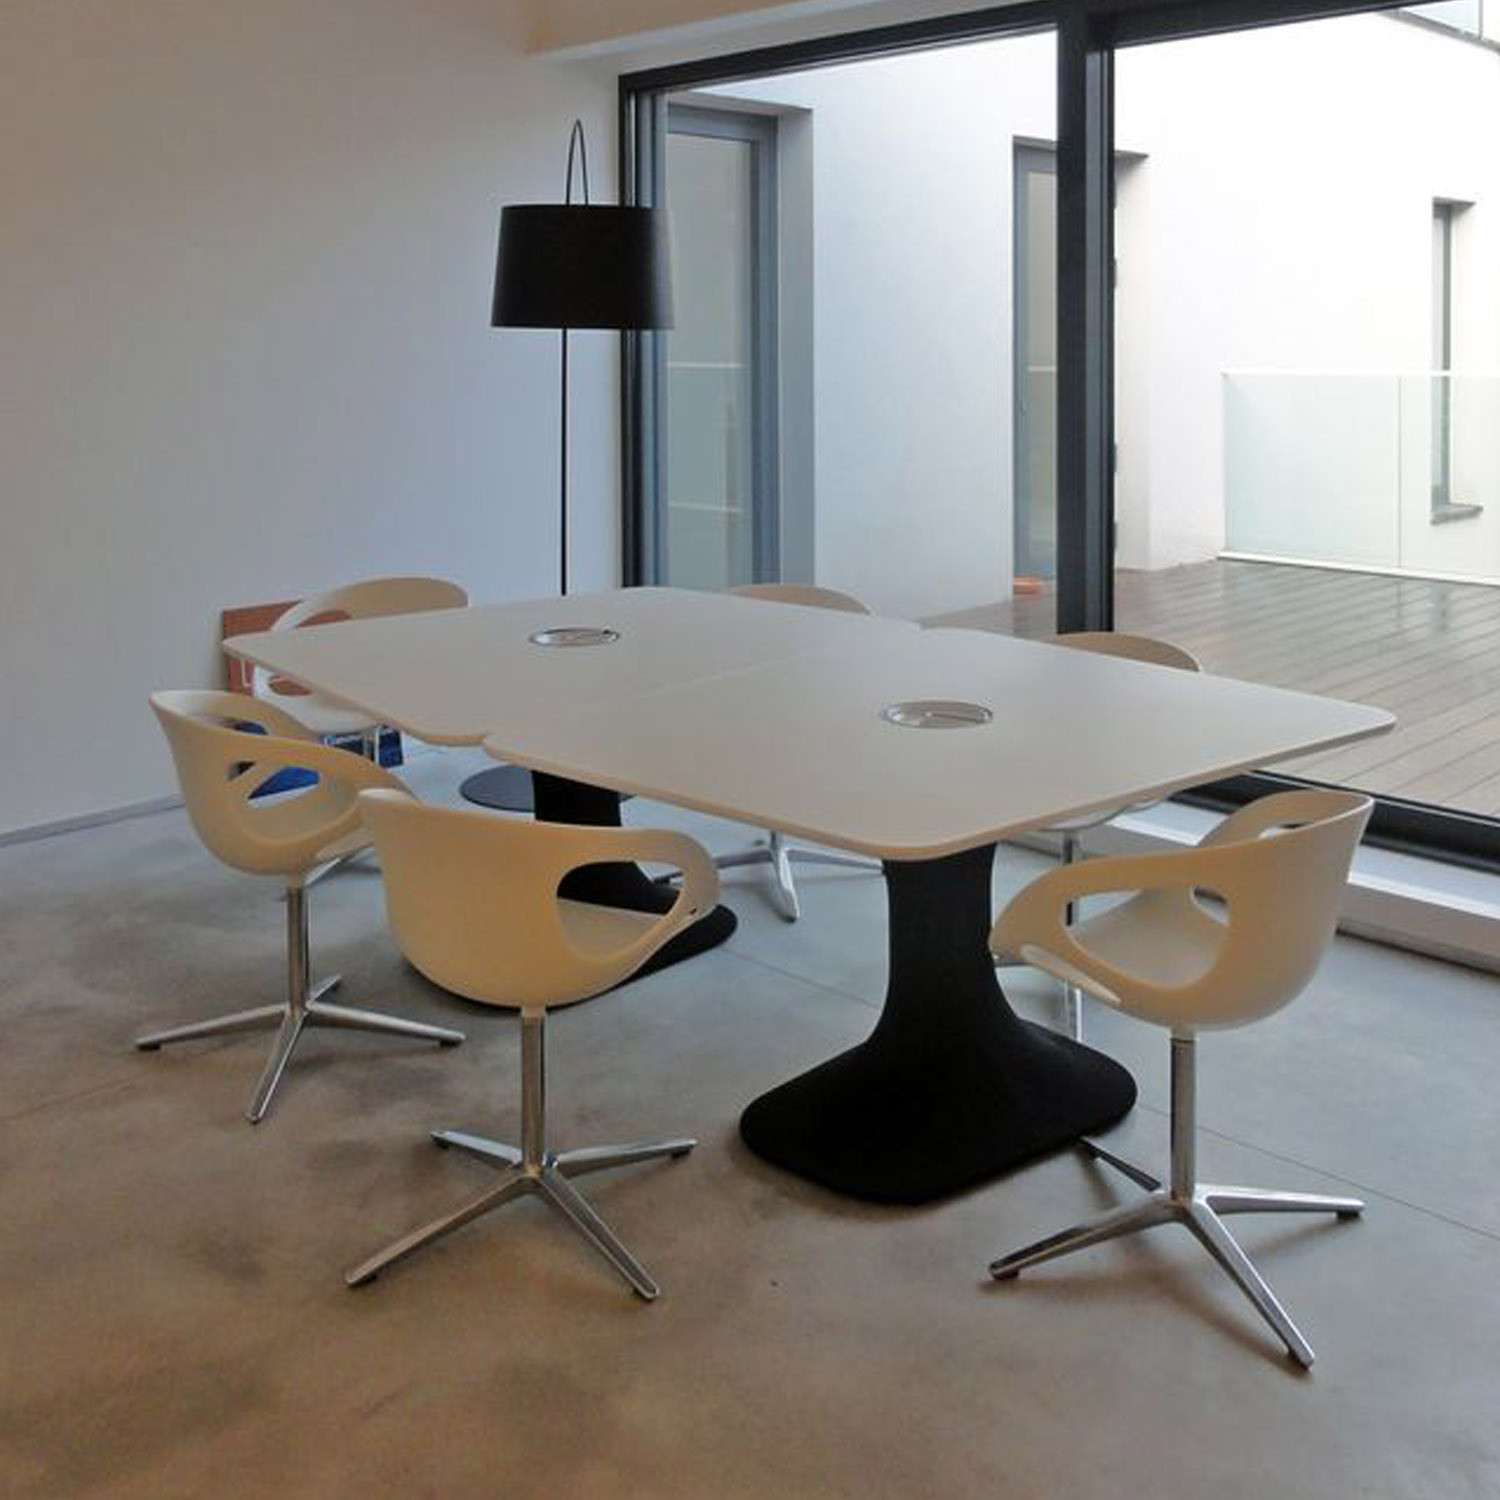 Kei Meeting Table from Bulo